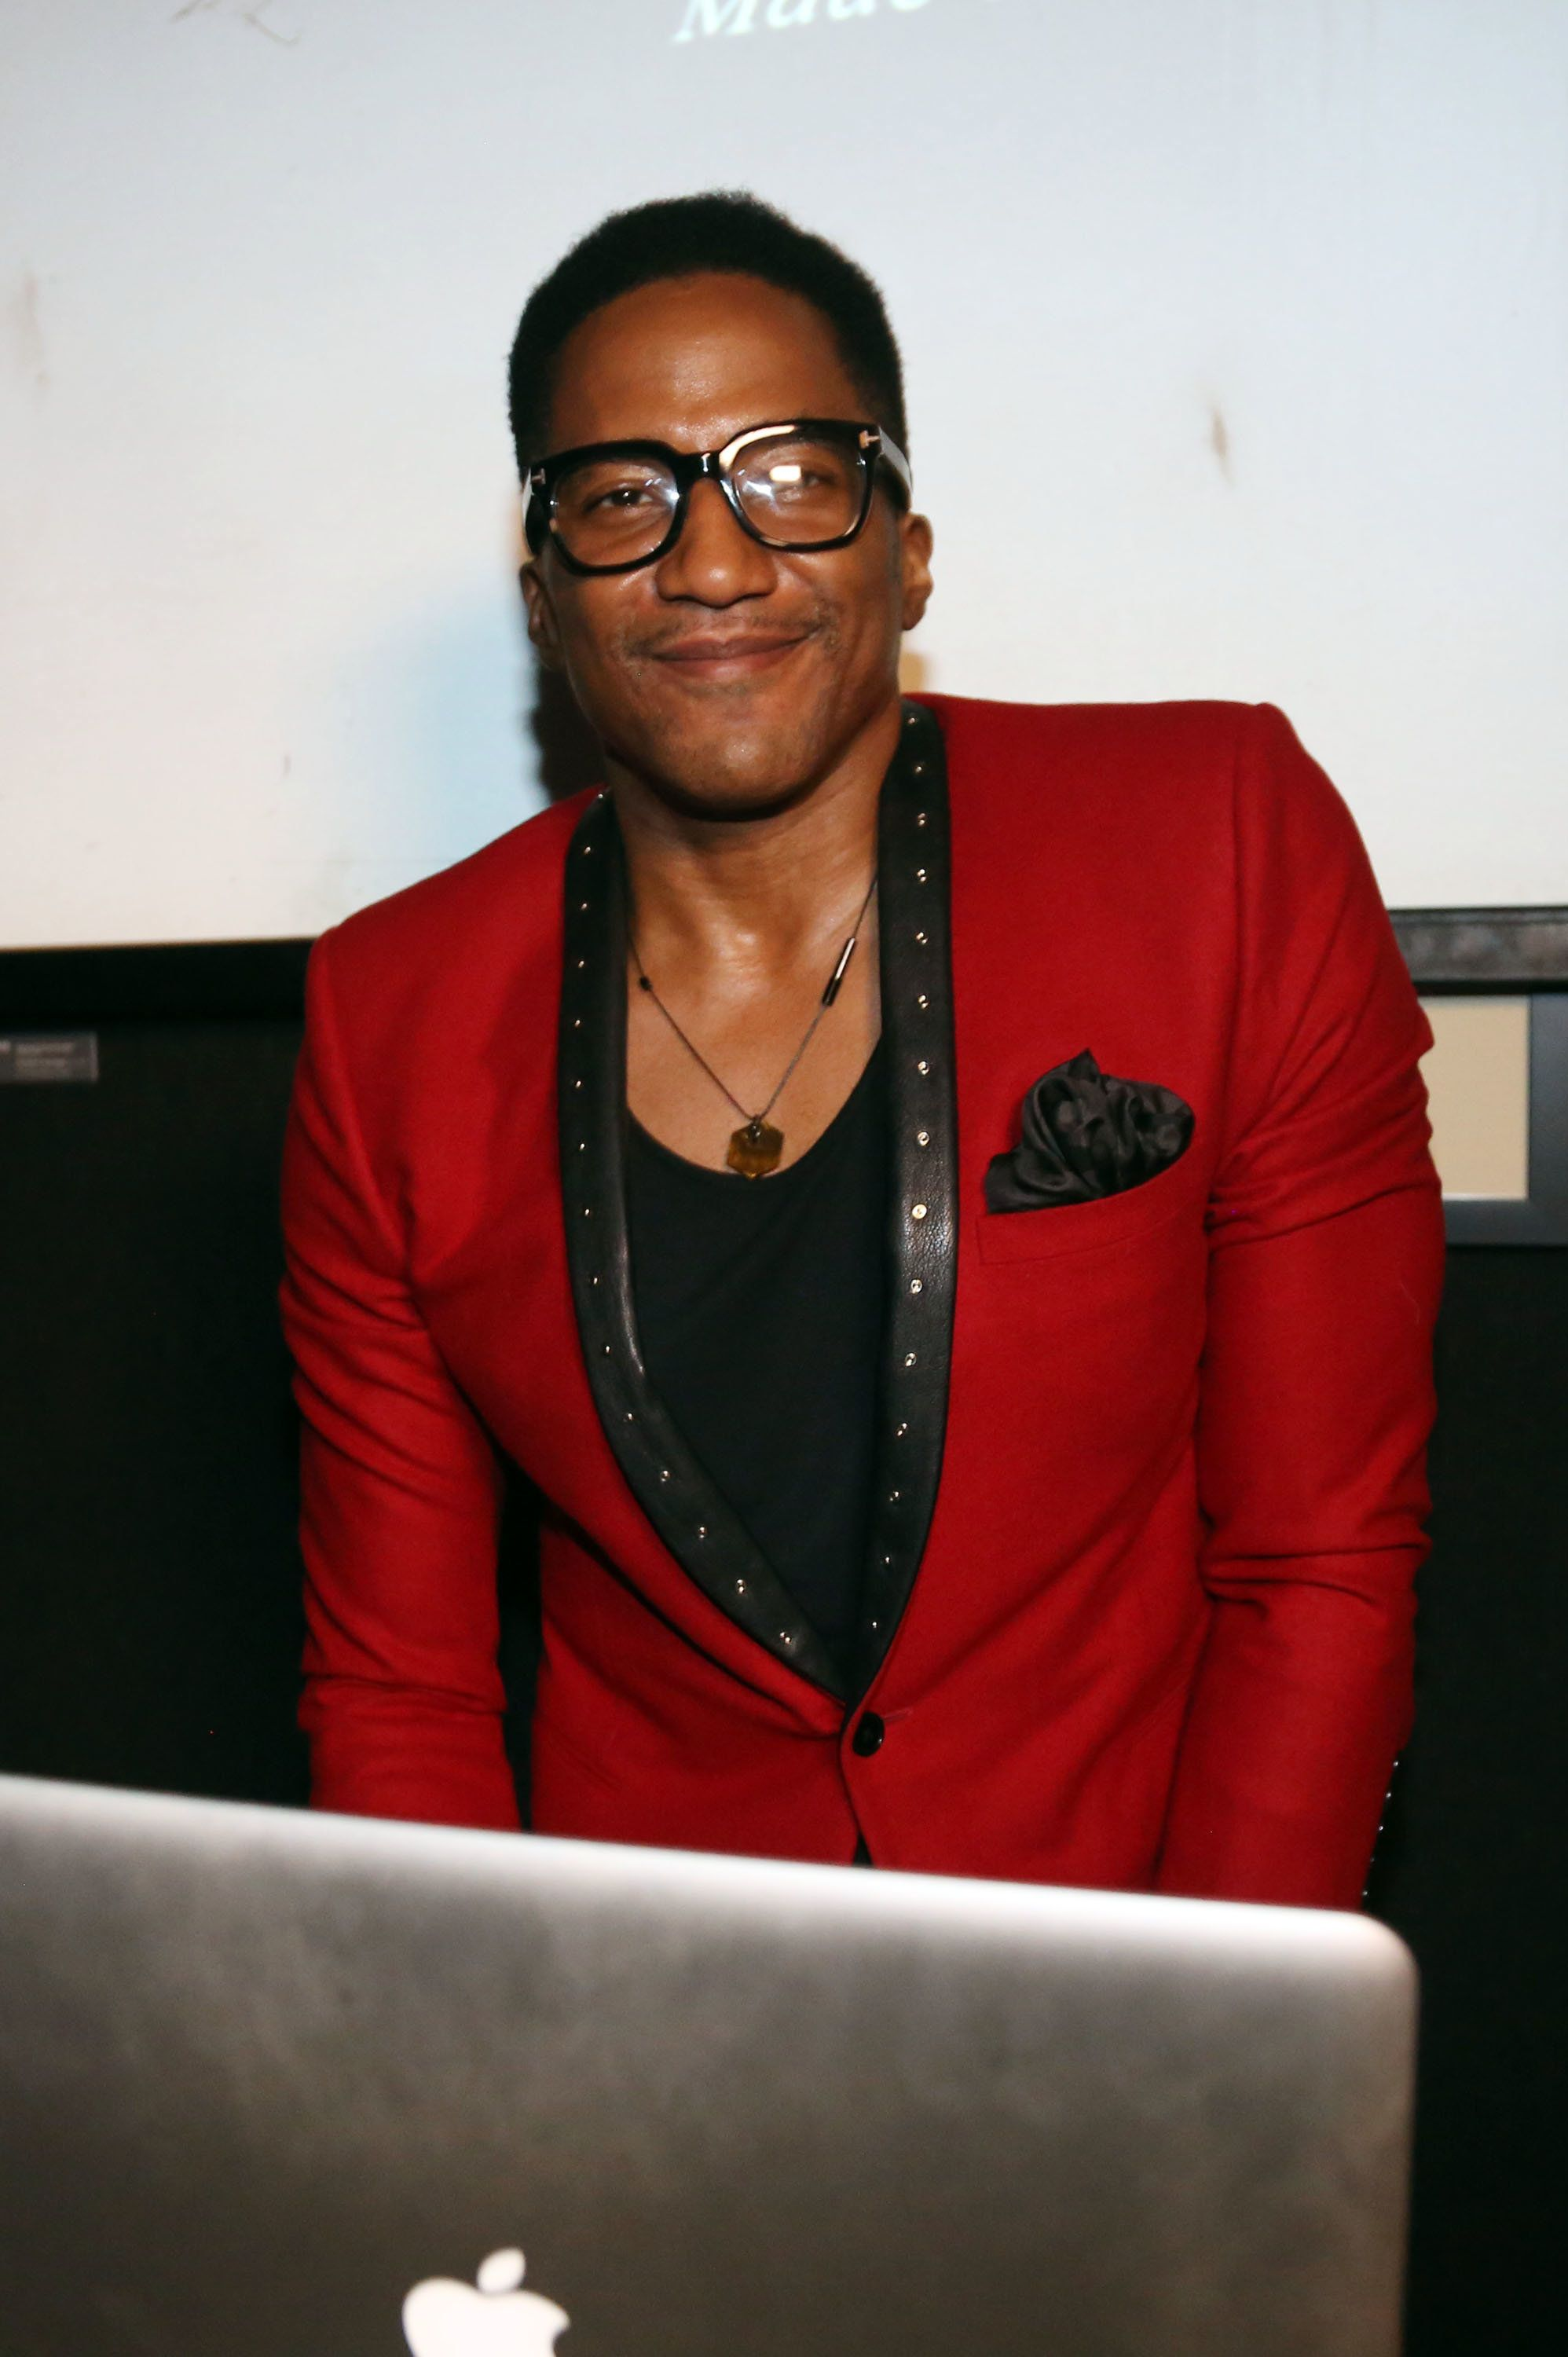 NEW YORK, NY - MAY 29:  Q-tip spins at the FLATT Book #7 Launch Party at The National Arts Club on May 29, 2014 in New York City.  (Photo by Johnny Nunez/WireImage)